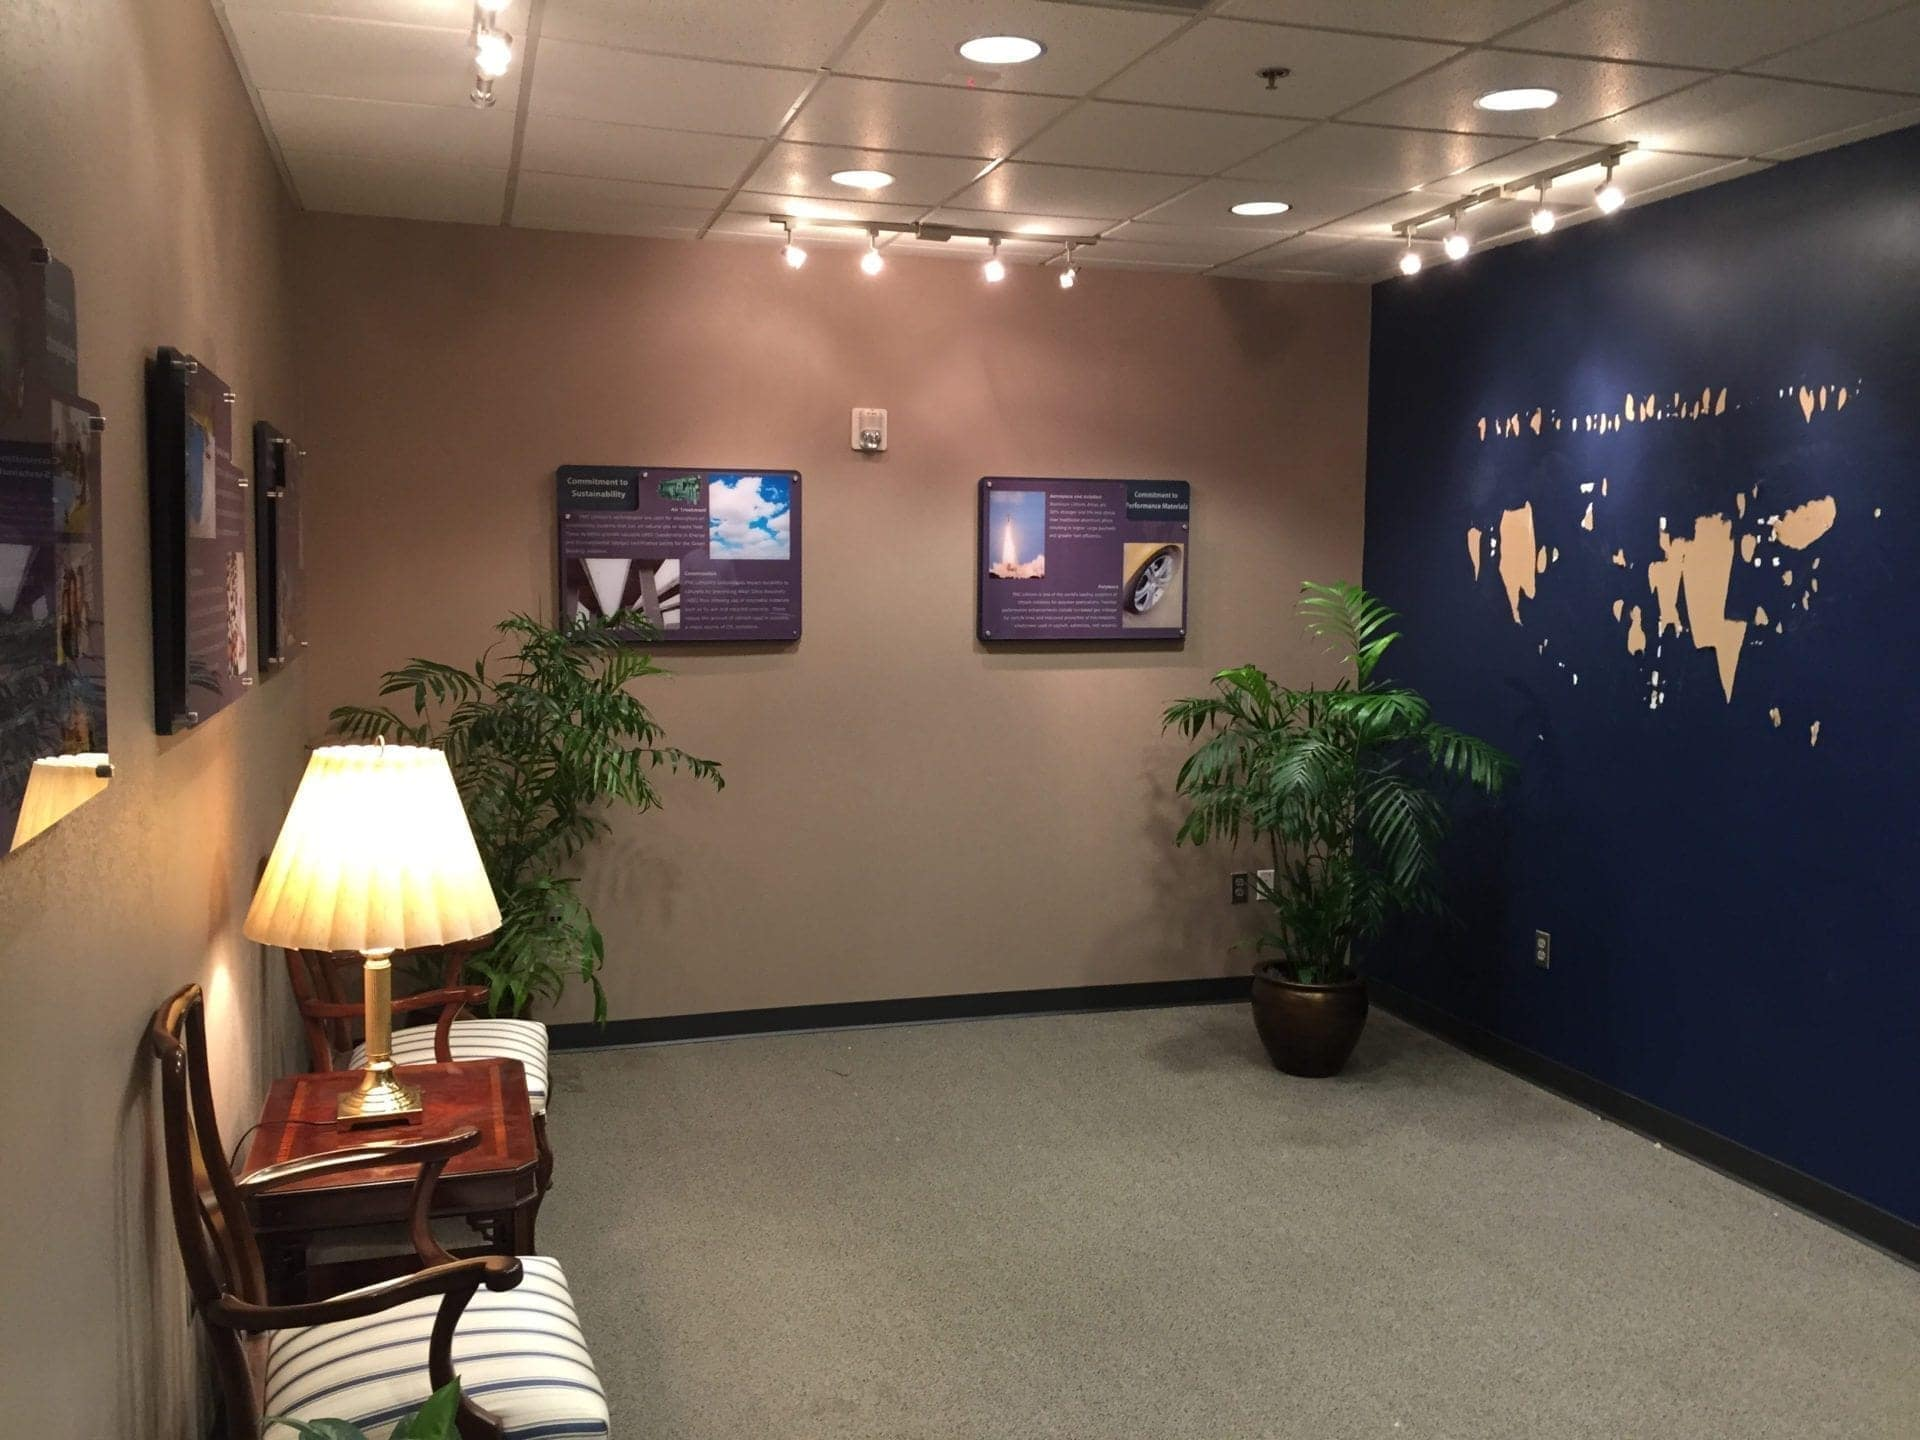 Installation progress of informational acrylic mounted graphics and 3D wall mounted world map